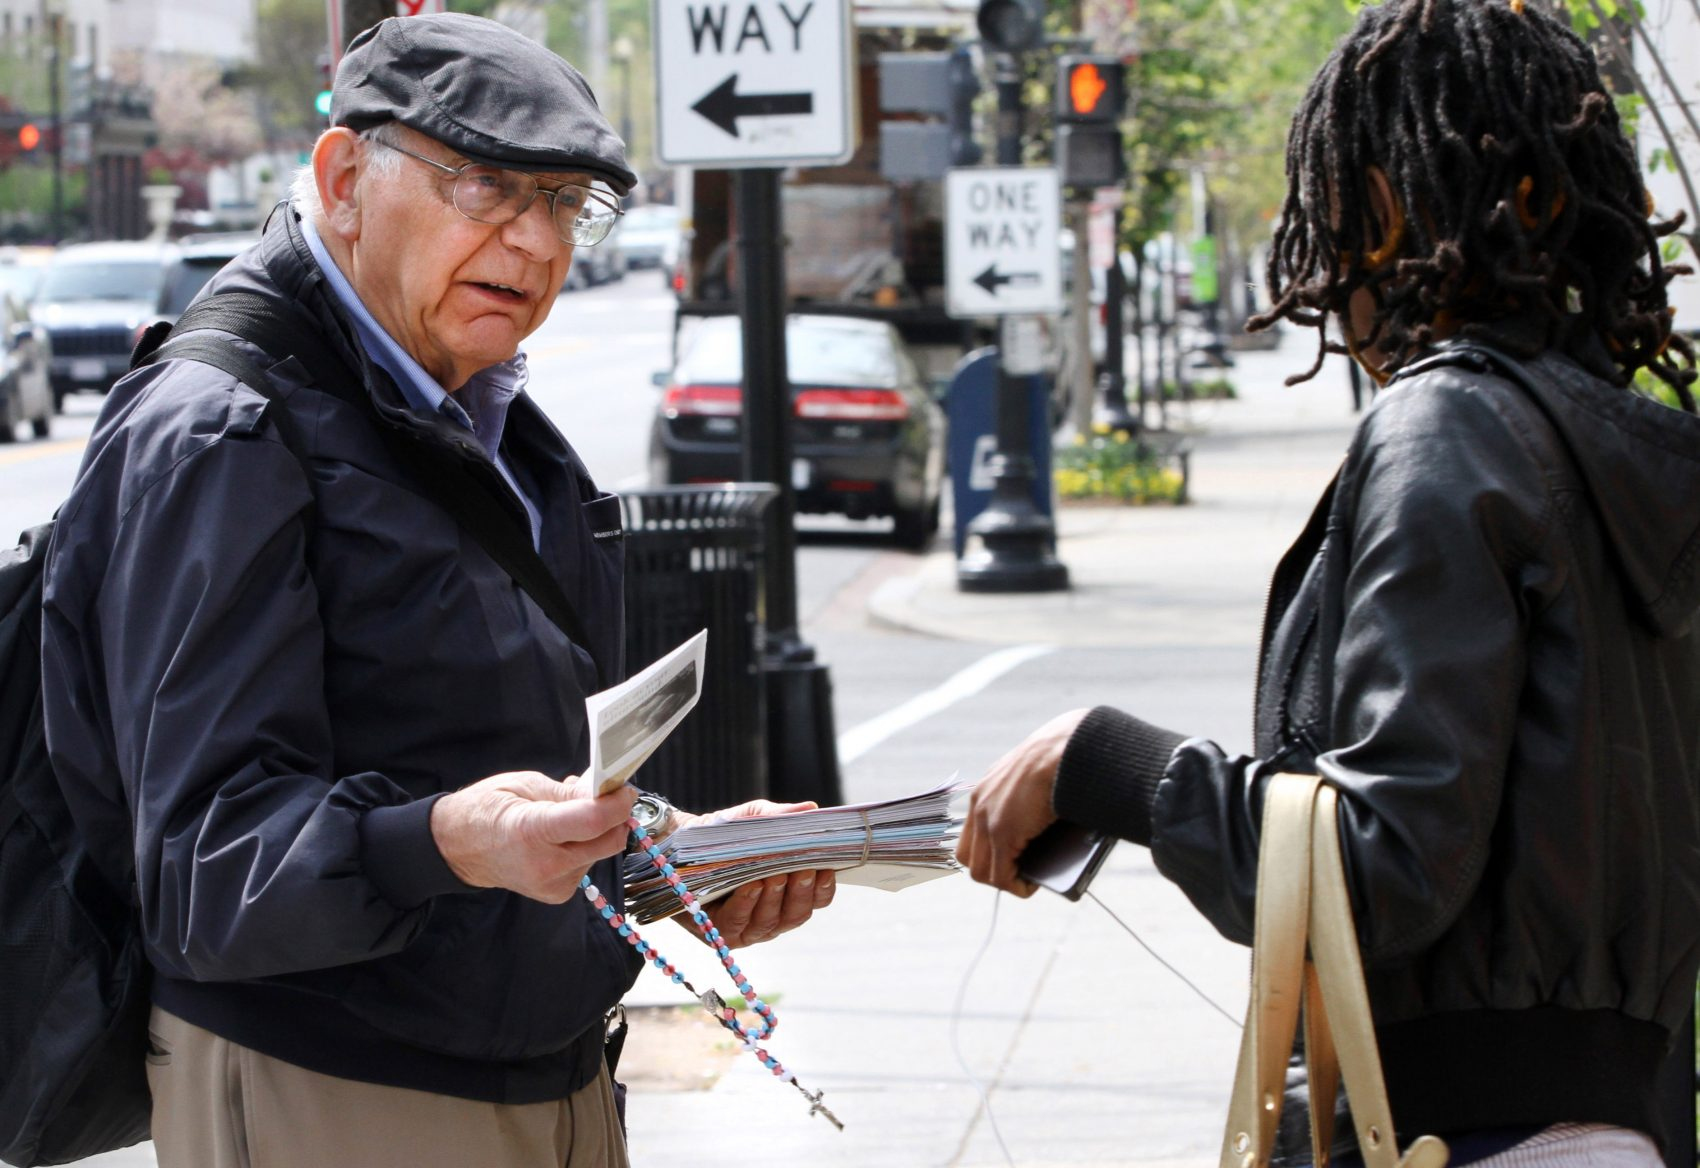 Not talking about abortion, writes Carol Sanger, distorts the public debate, which influences the legislative process. Pictured: Richard Retta, 80, left, hands an anti-abortion flyer to a woman as she leaves Planned Parenthood in Washington on April 4, 2012. (Jacquelyn Martin/AP)